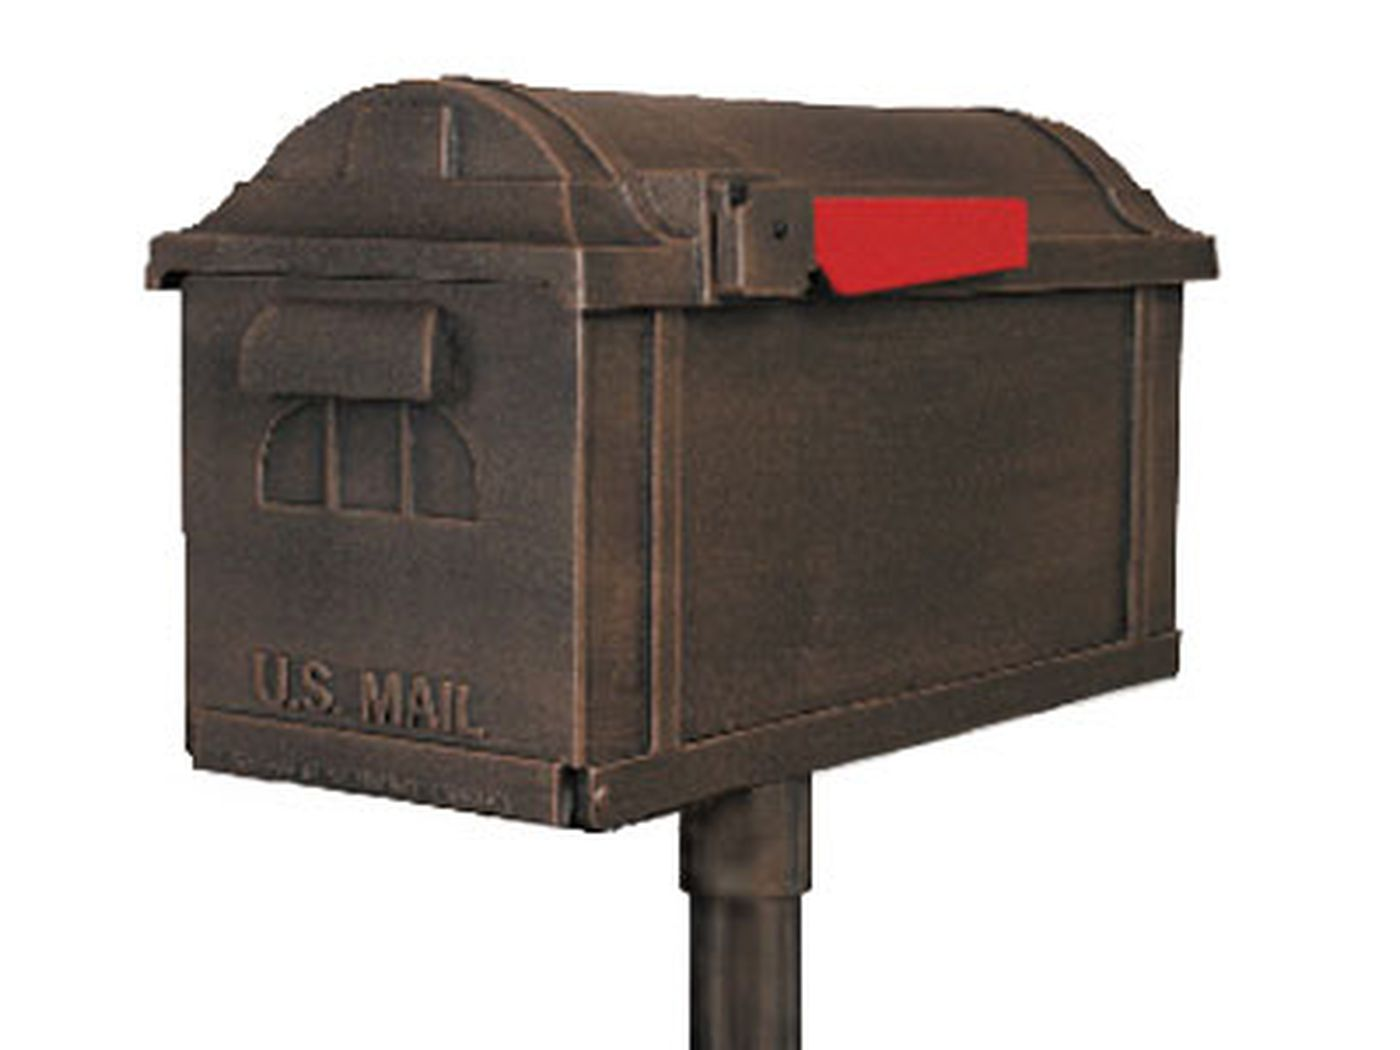 Post Mount Mailboxes This Old House